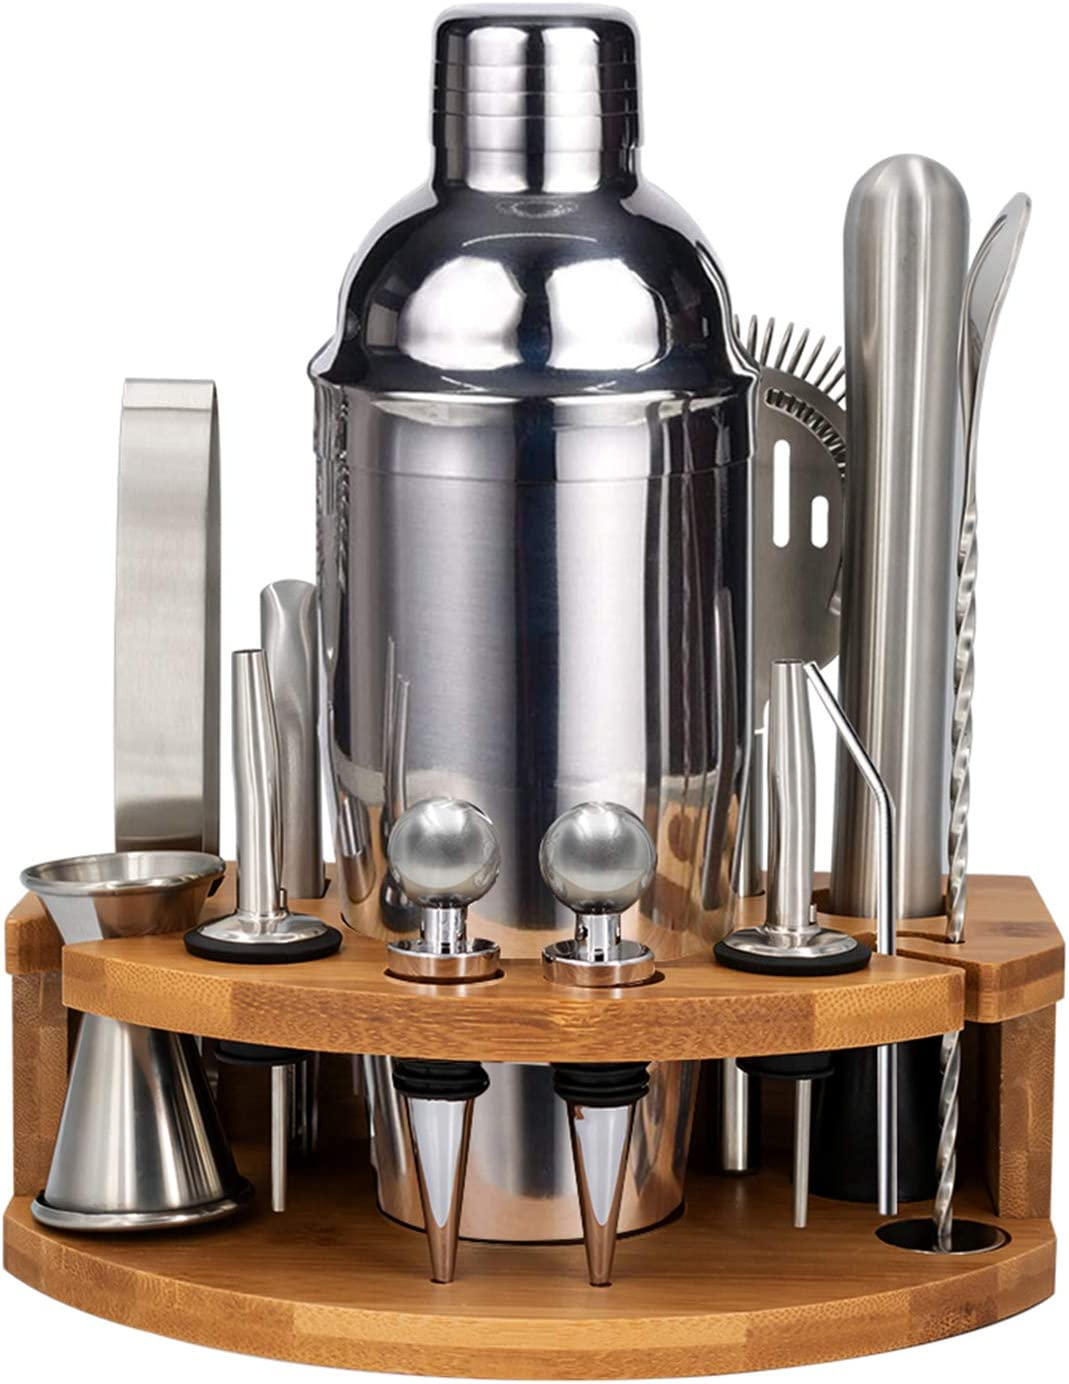 FOVERN1 Cocktail Shaker Set Bartender Kit, 15 Pieces Home Bar Tool Set with Bamboo Stand 25 oz Professional Stainless Steel Martini Shaker with Cocktail Recipes Booklet